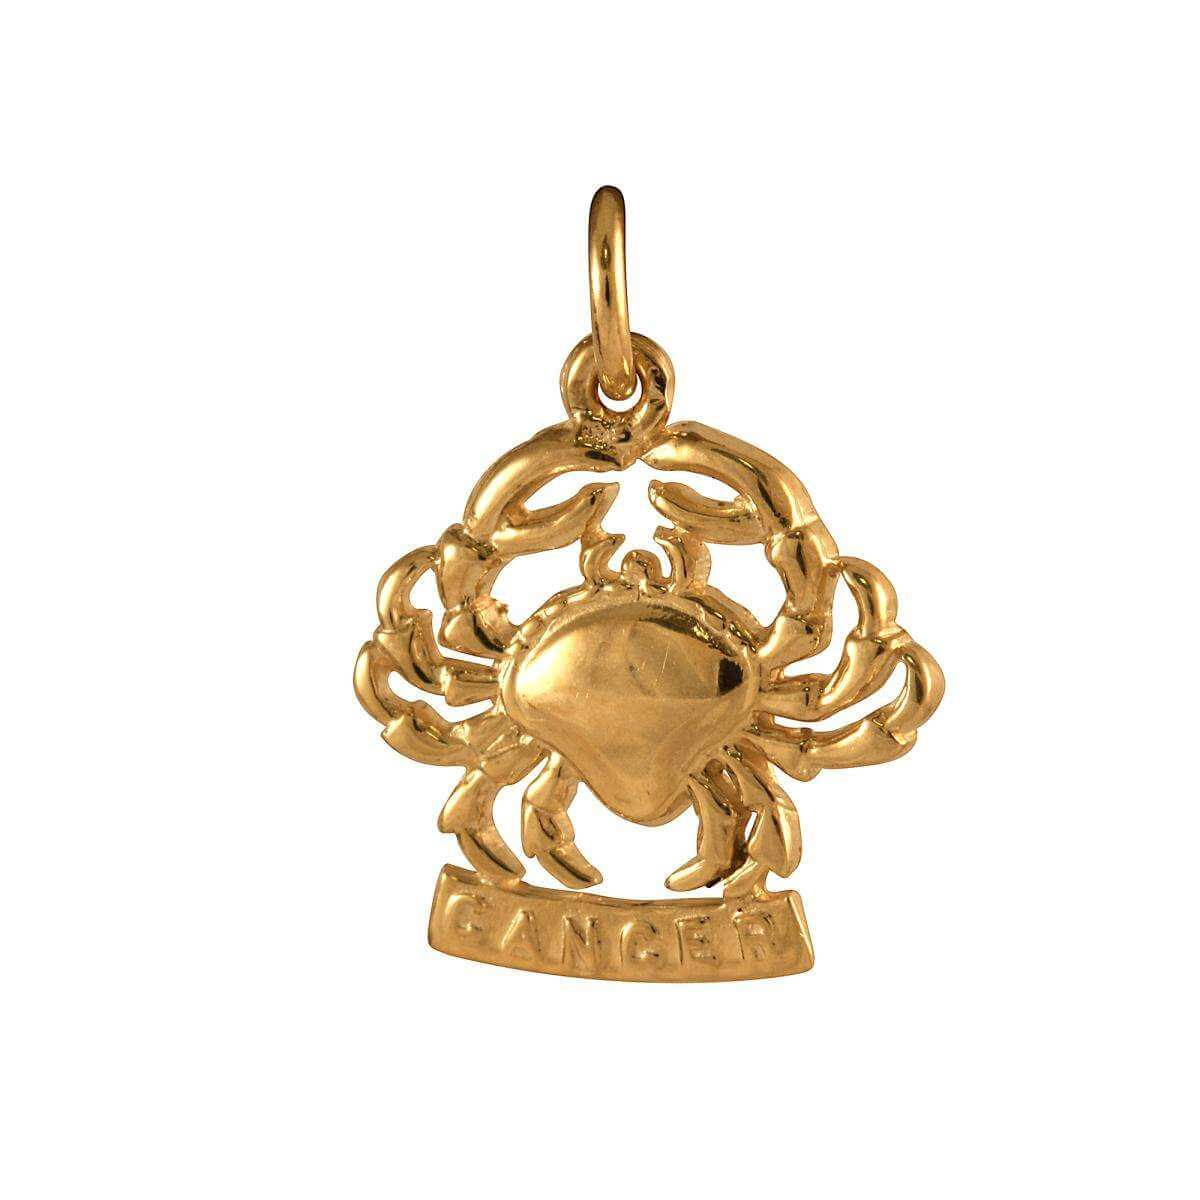 Sayers London 9ct Gold Cancer Crab Charm GDj7NY8vd